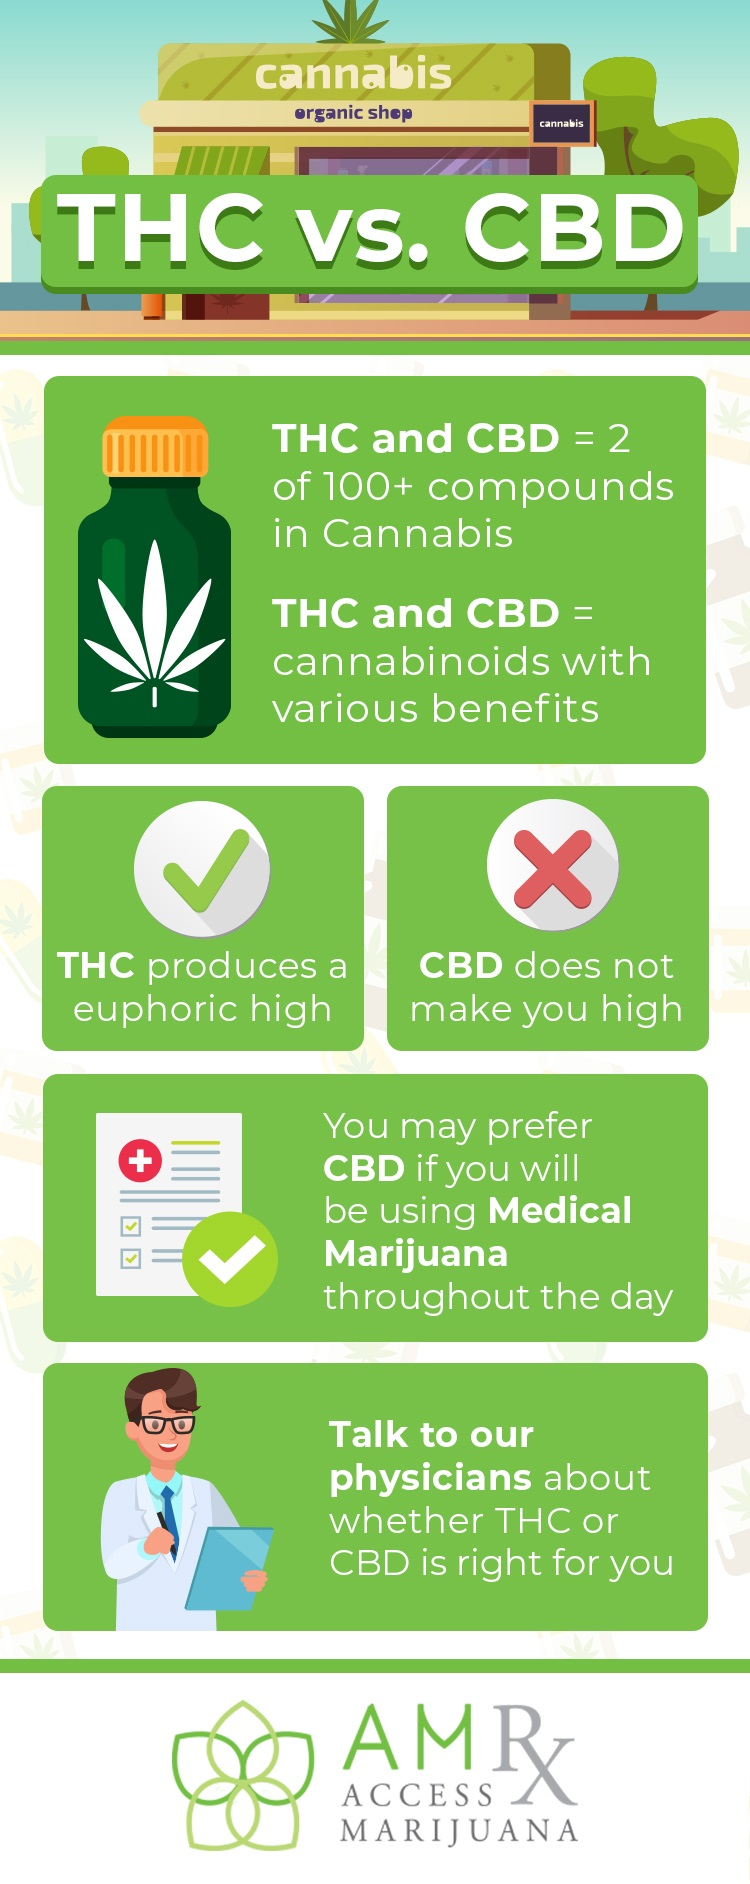 Infographic highlighting the differences between CBD and THC